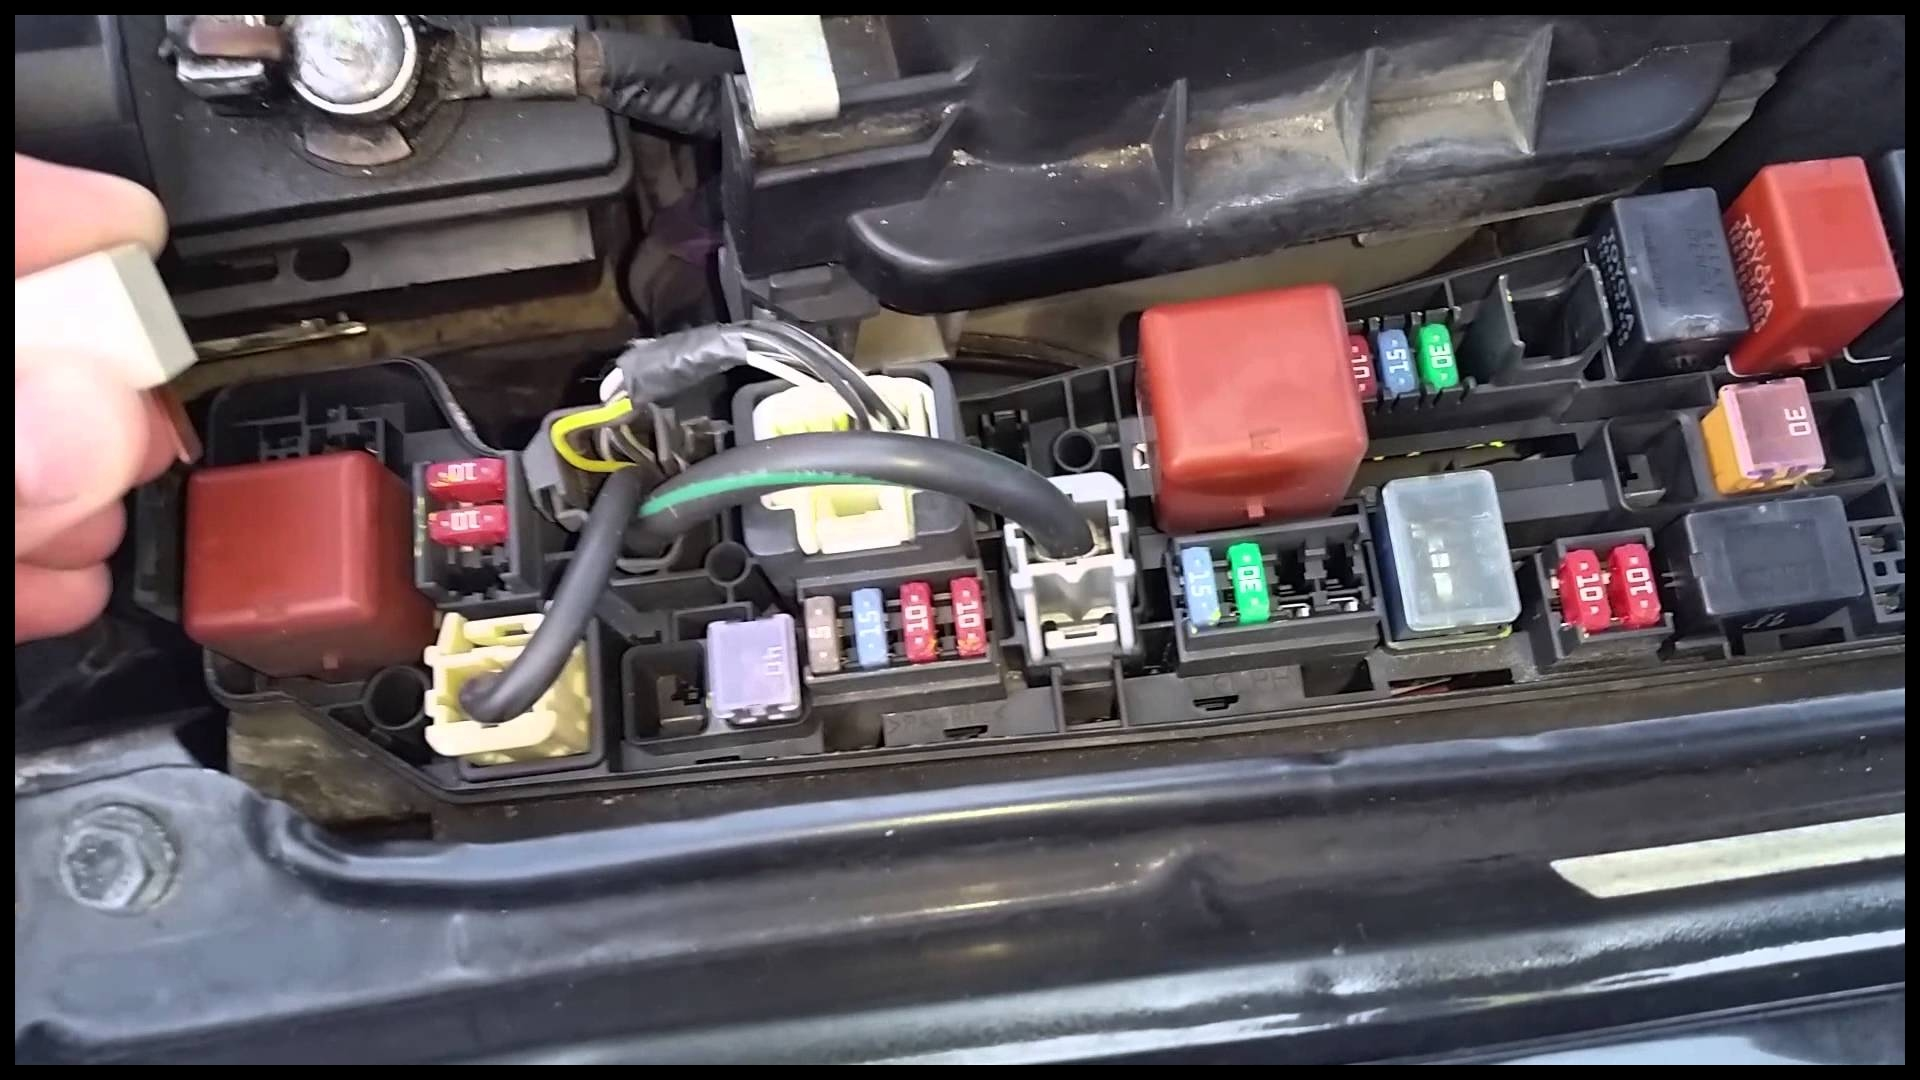 Toyota Corolla 99 03 AC clutch not engaging AC clutch relay not working location